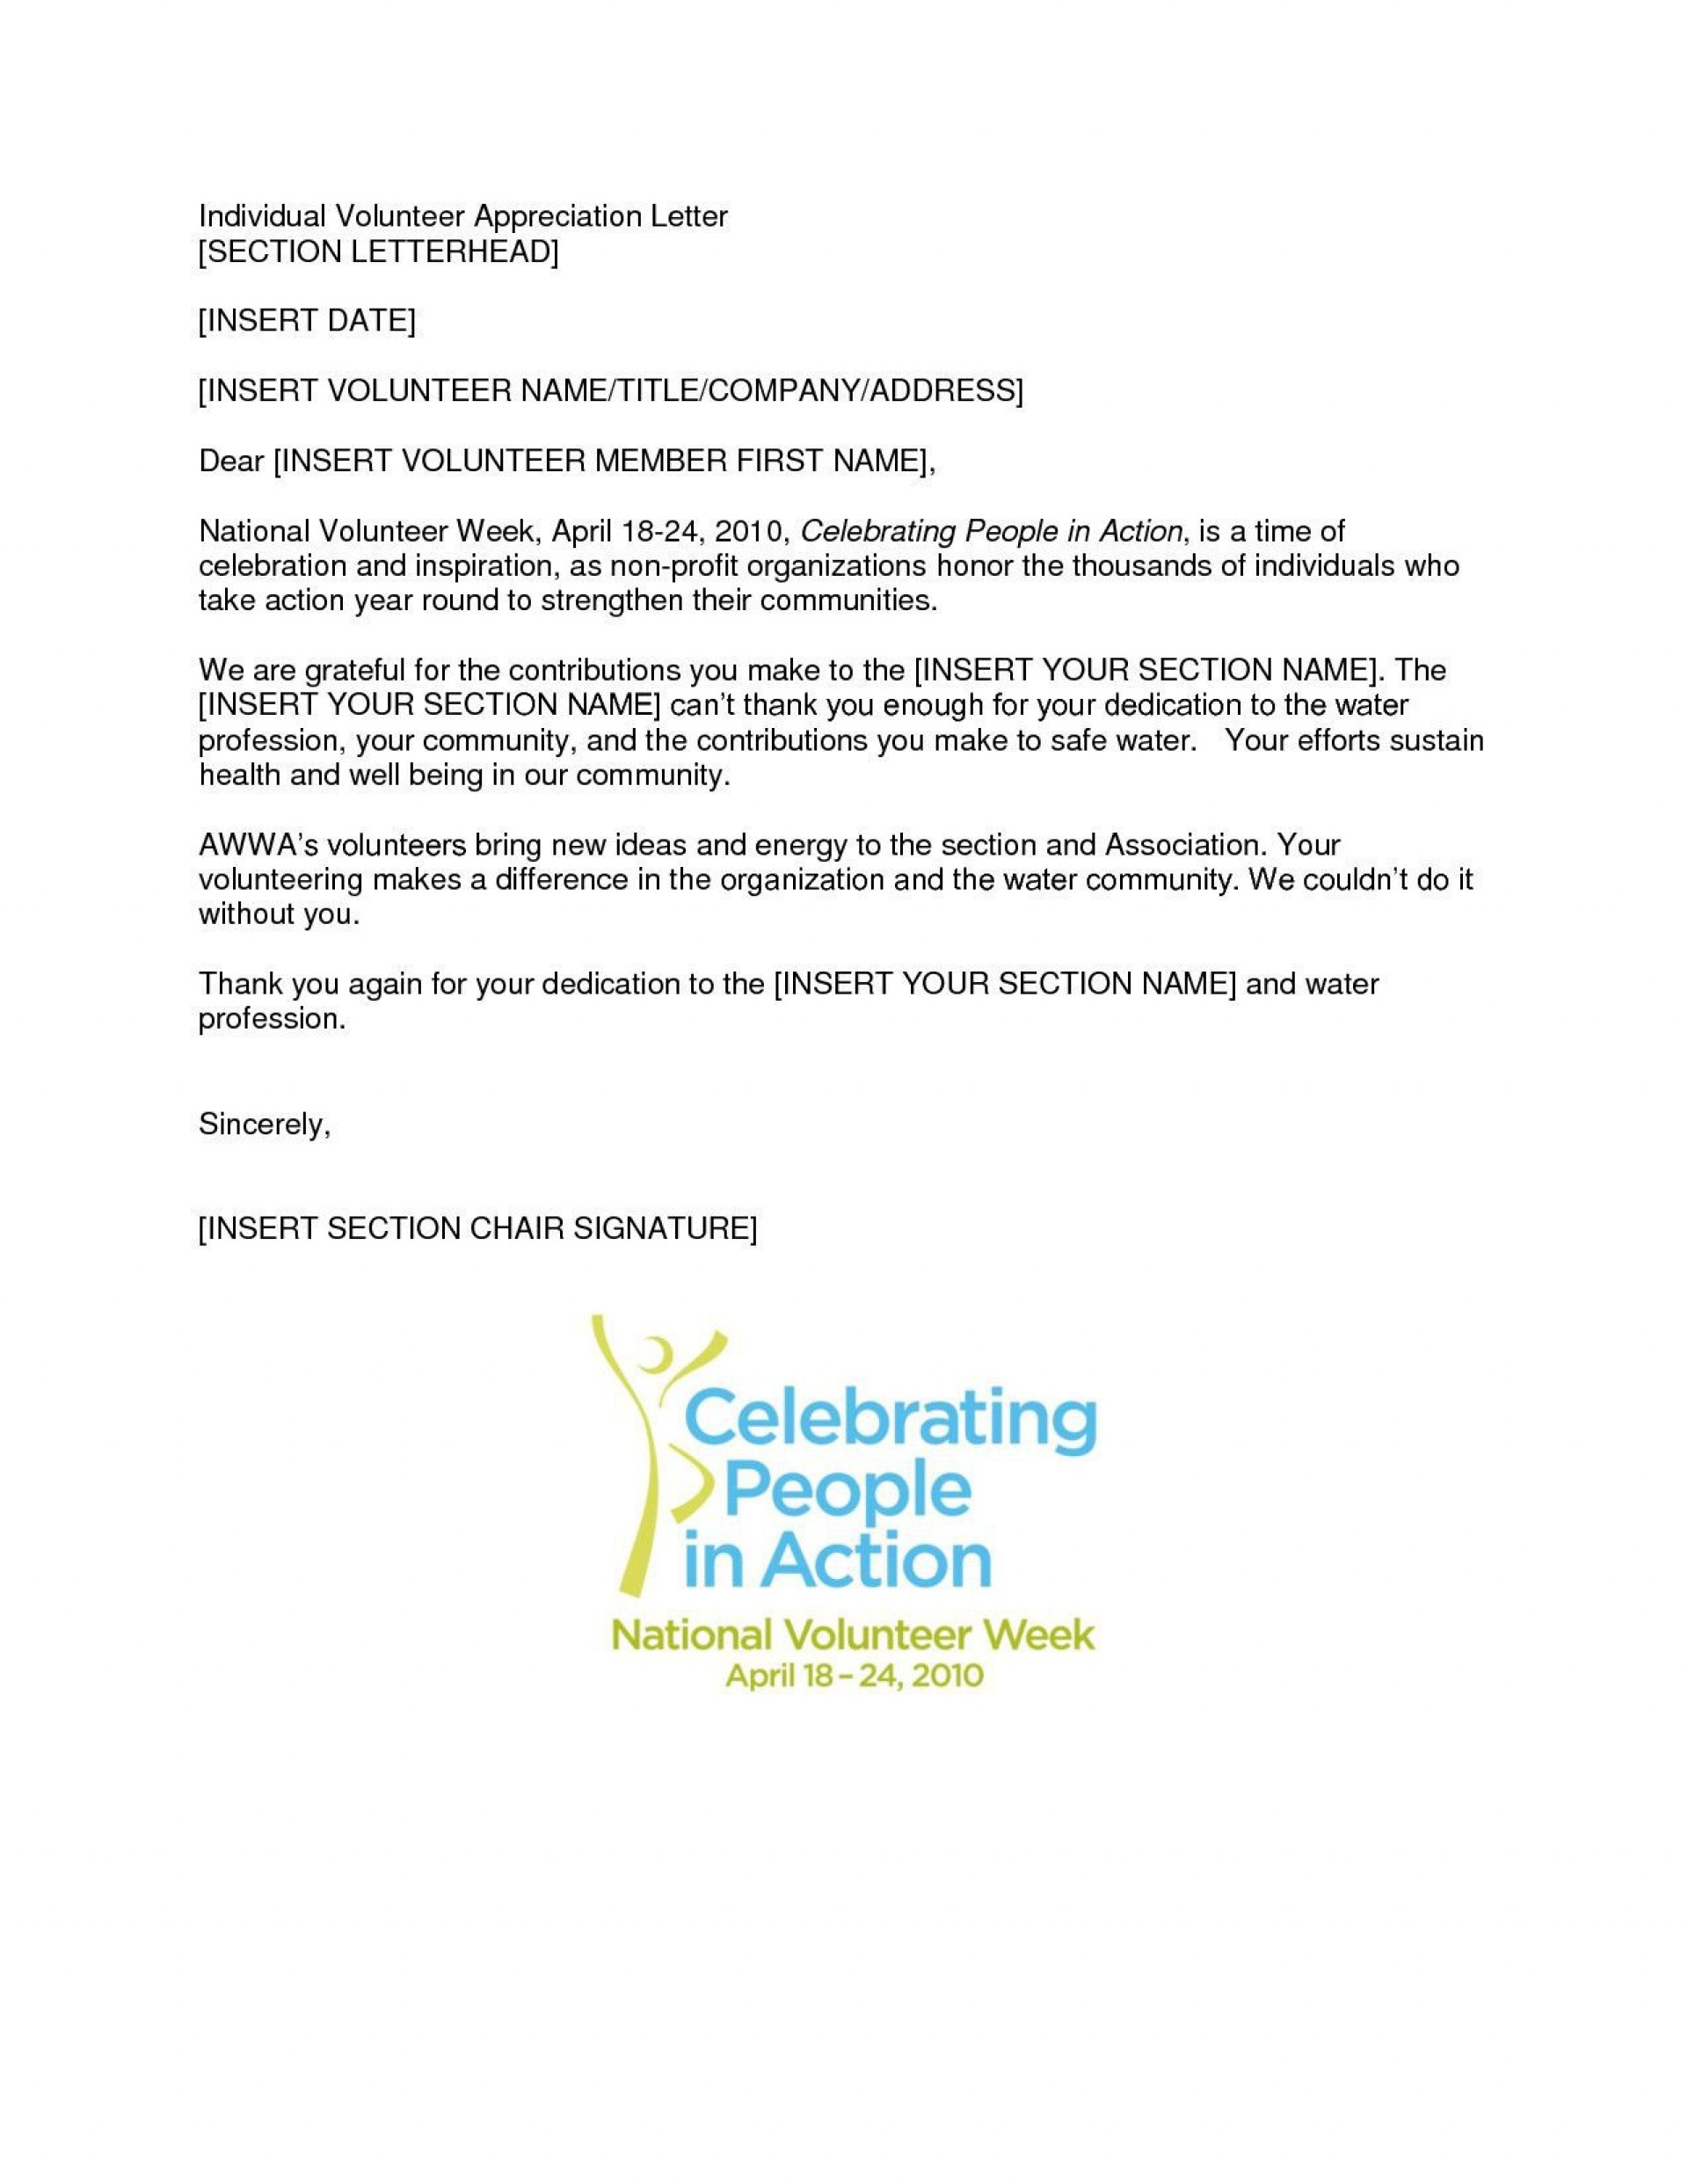 Volunteer Letter Of Appreciation Template from www.addictionary.org